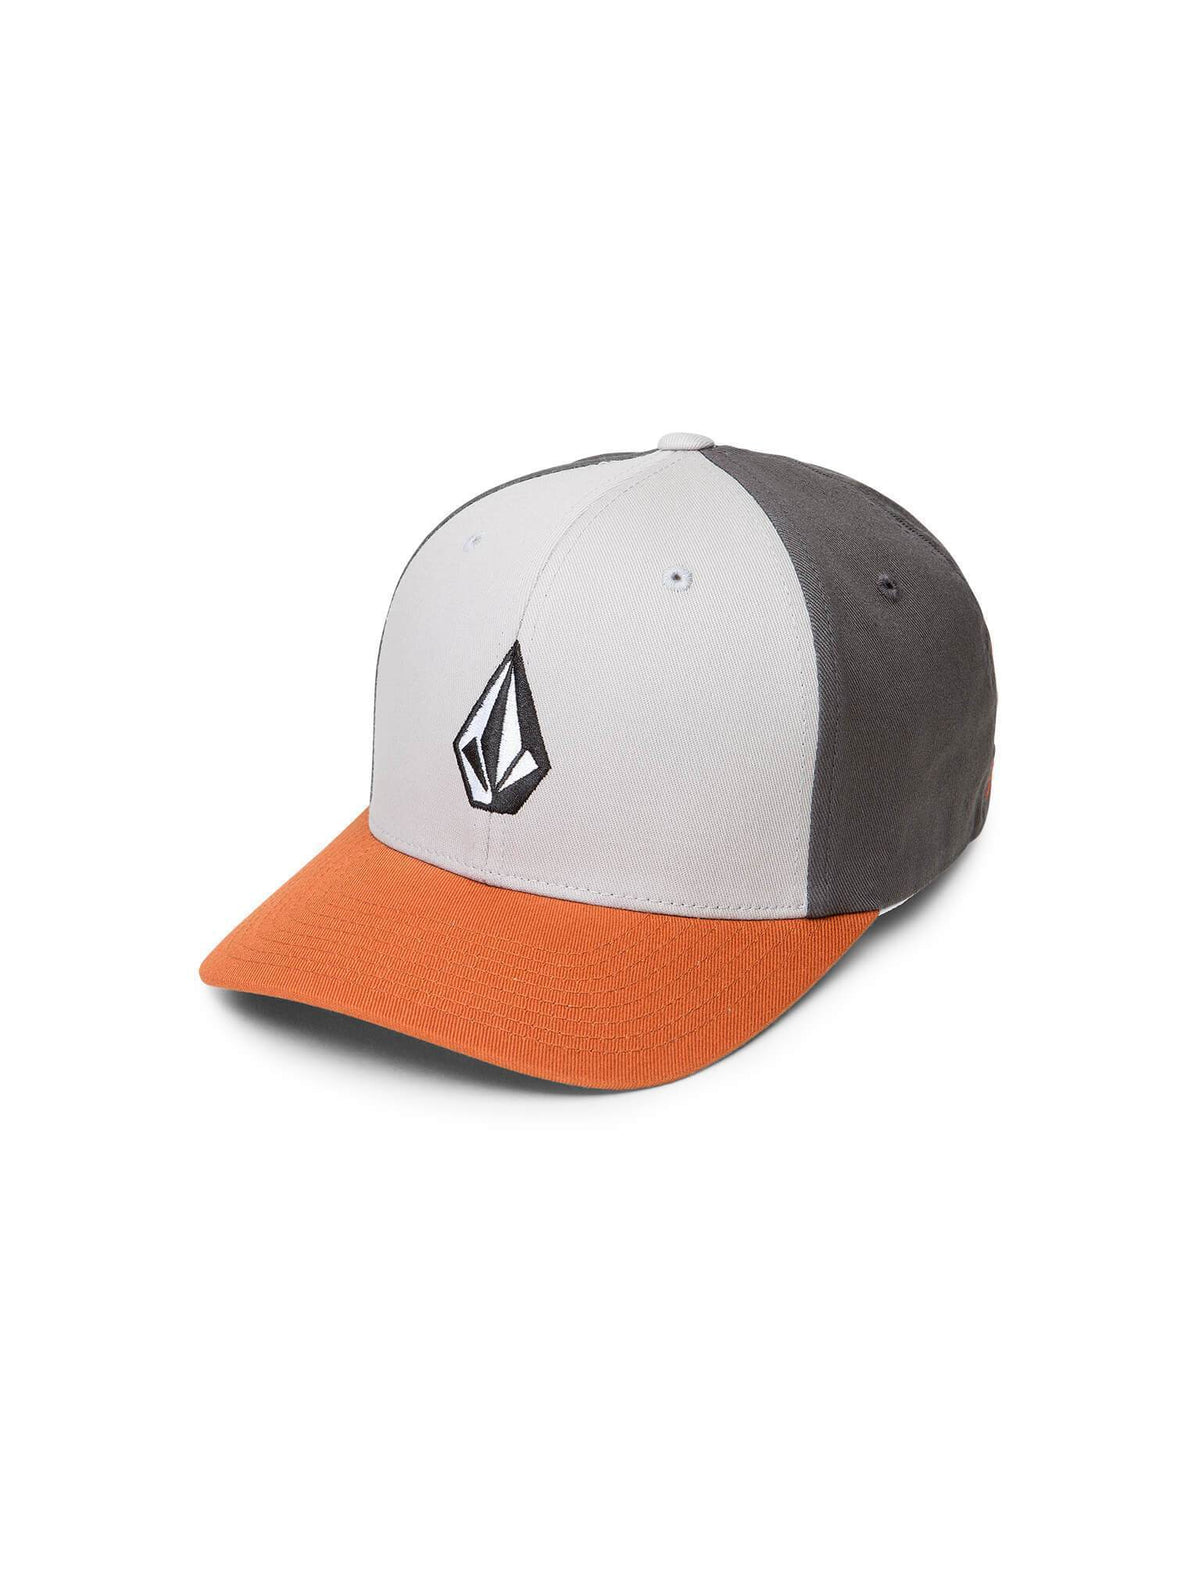 Gorra Full Stone Xfit - Copper